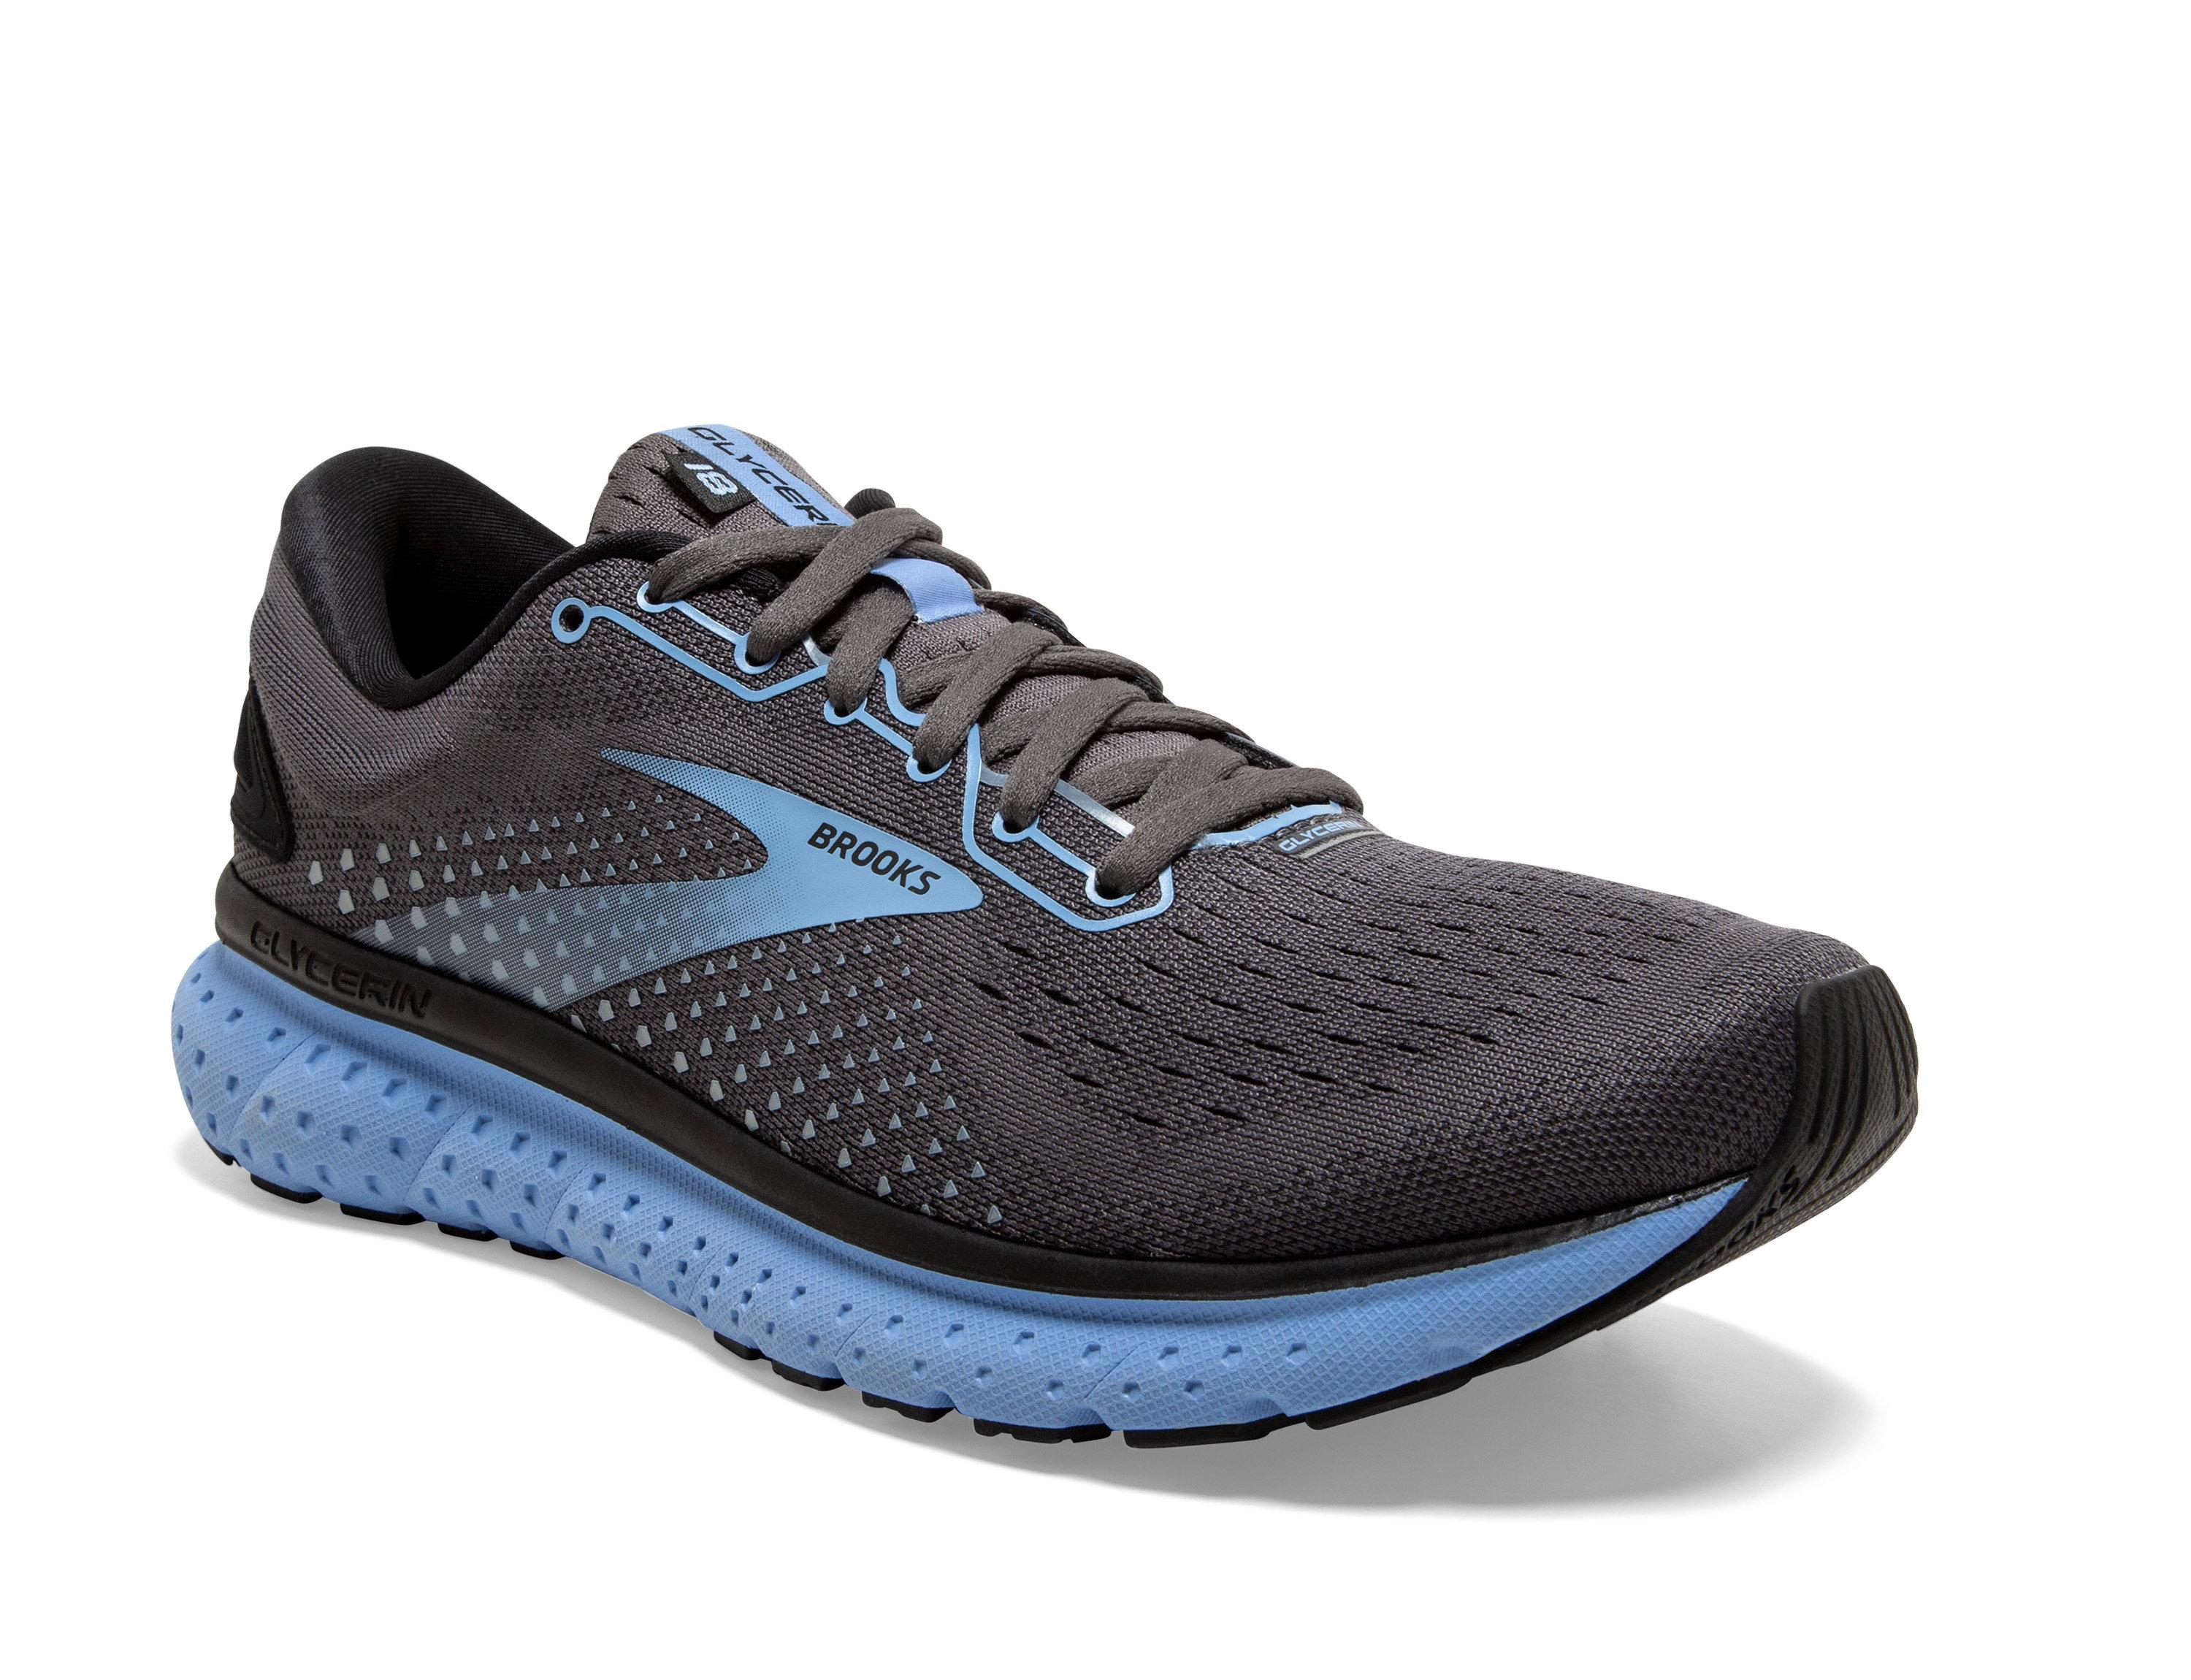 Brooks Glycerin 18 men's and women's running shoes